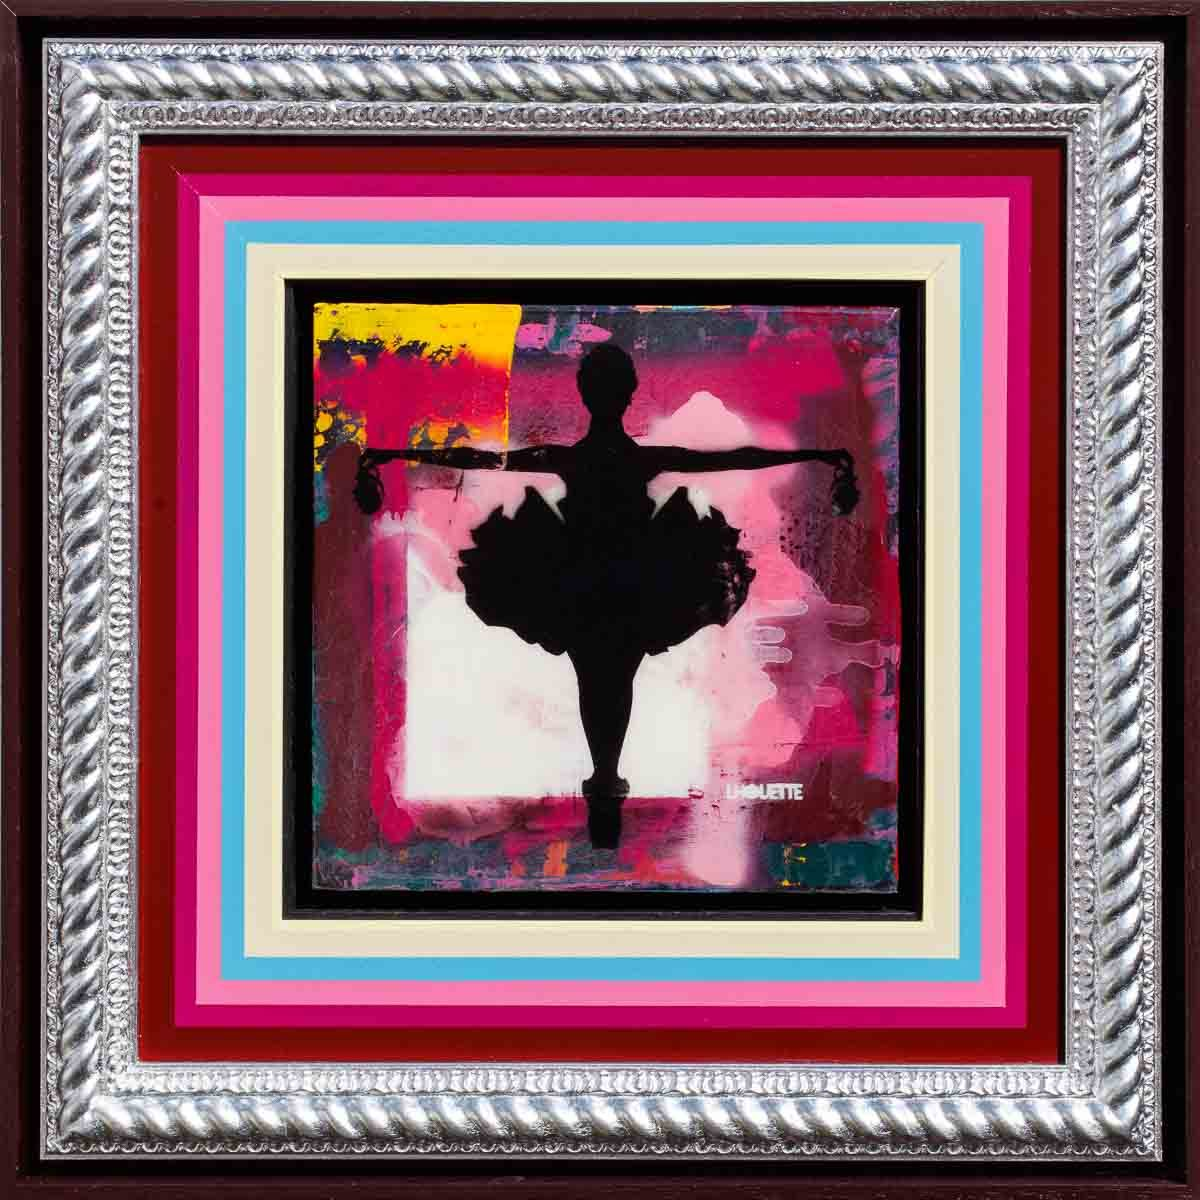 Drop The Bomb Mixer (Cherry Blossom) - Original Lhouette Framed